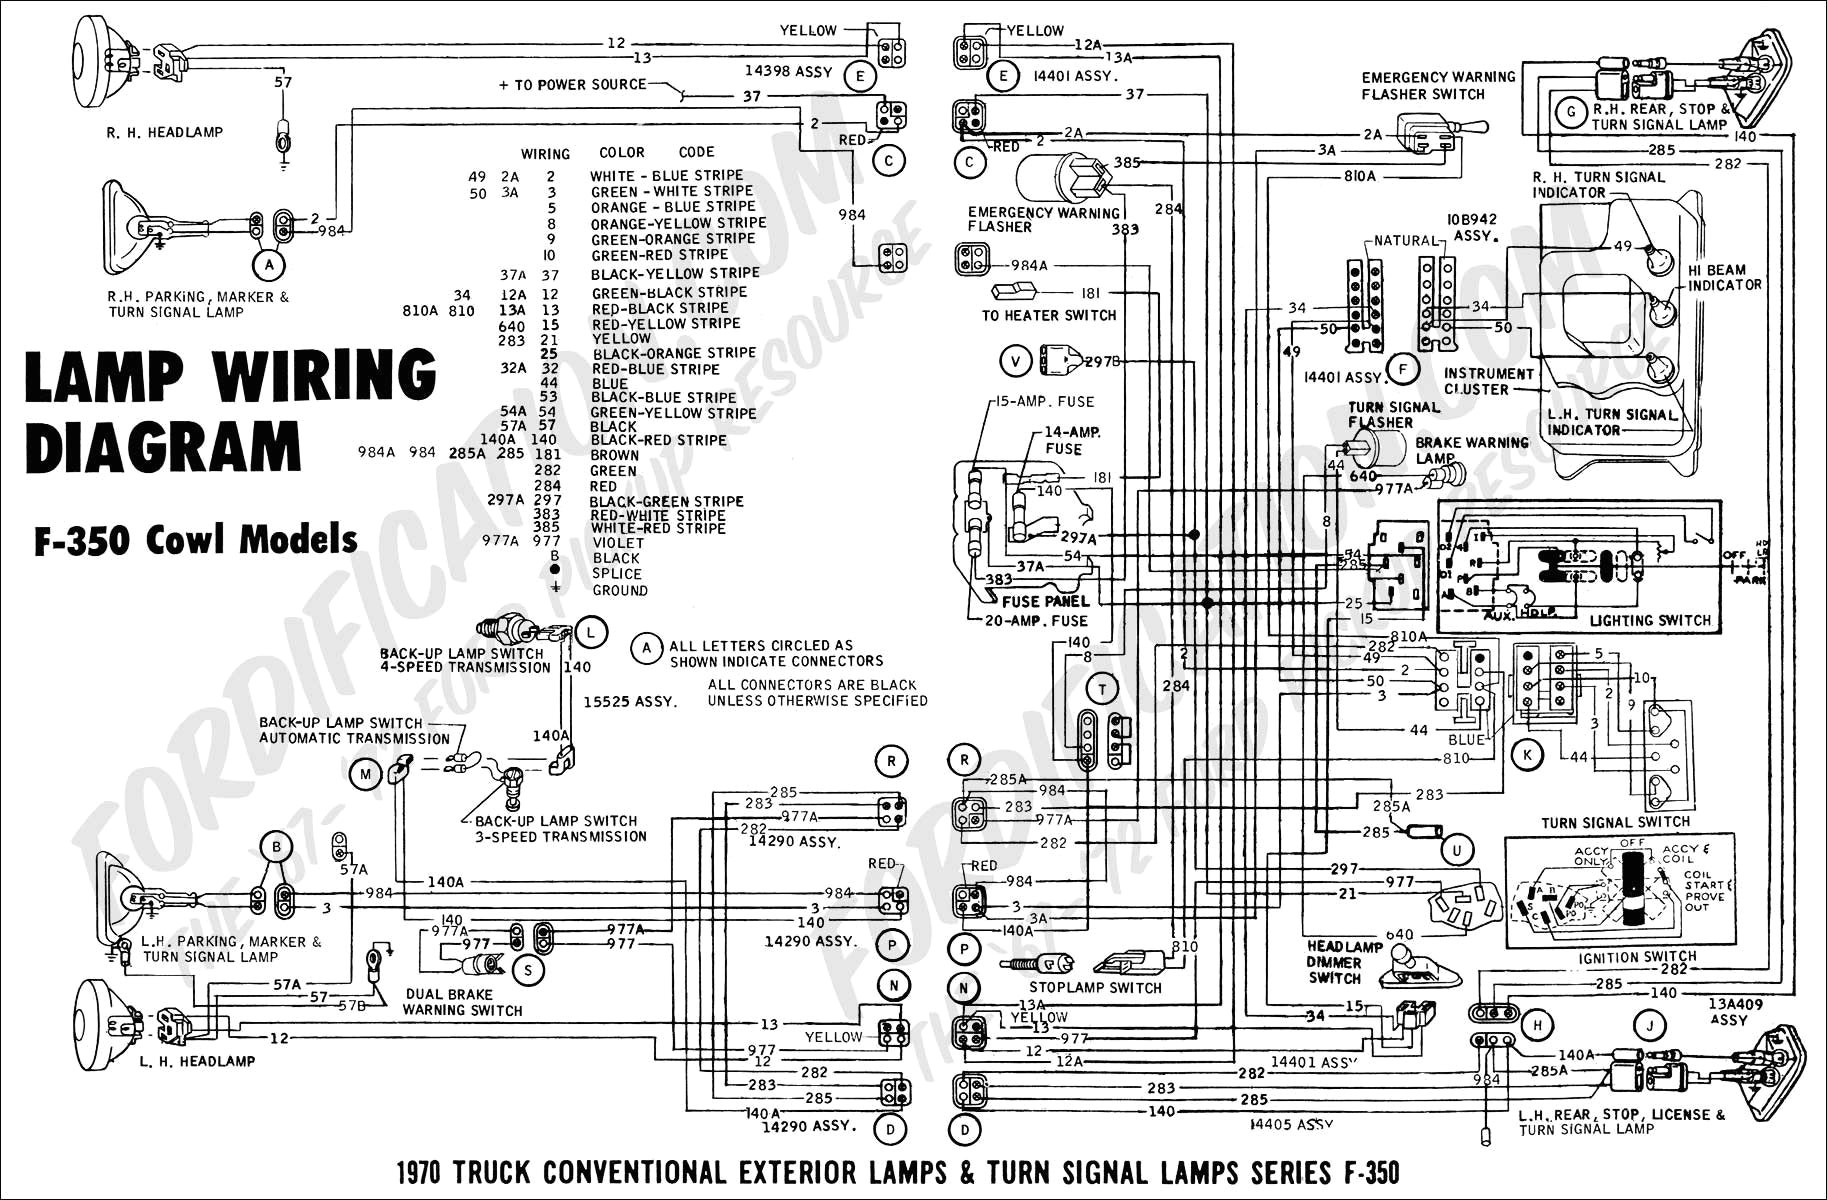 2003 ford f150 power mirror wiring diagram universal wiper motor 2000 f350 best site